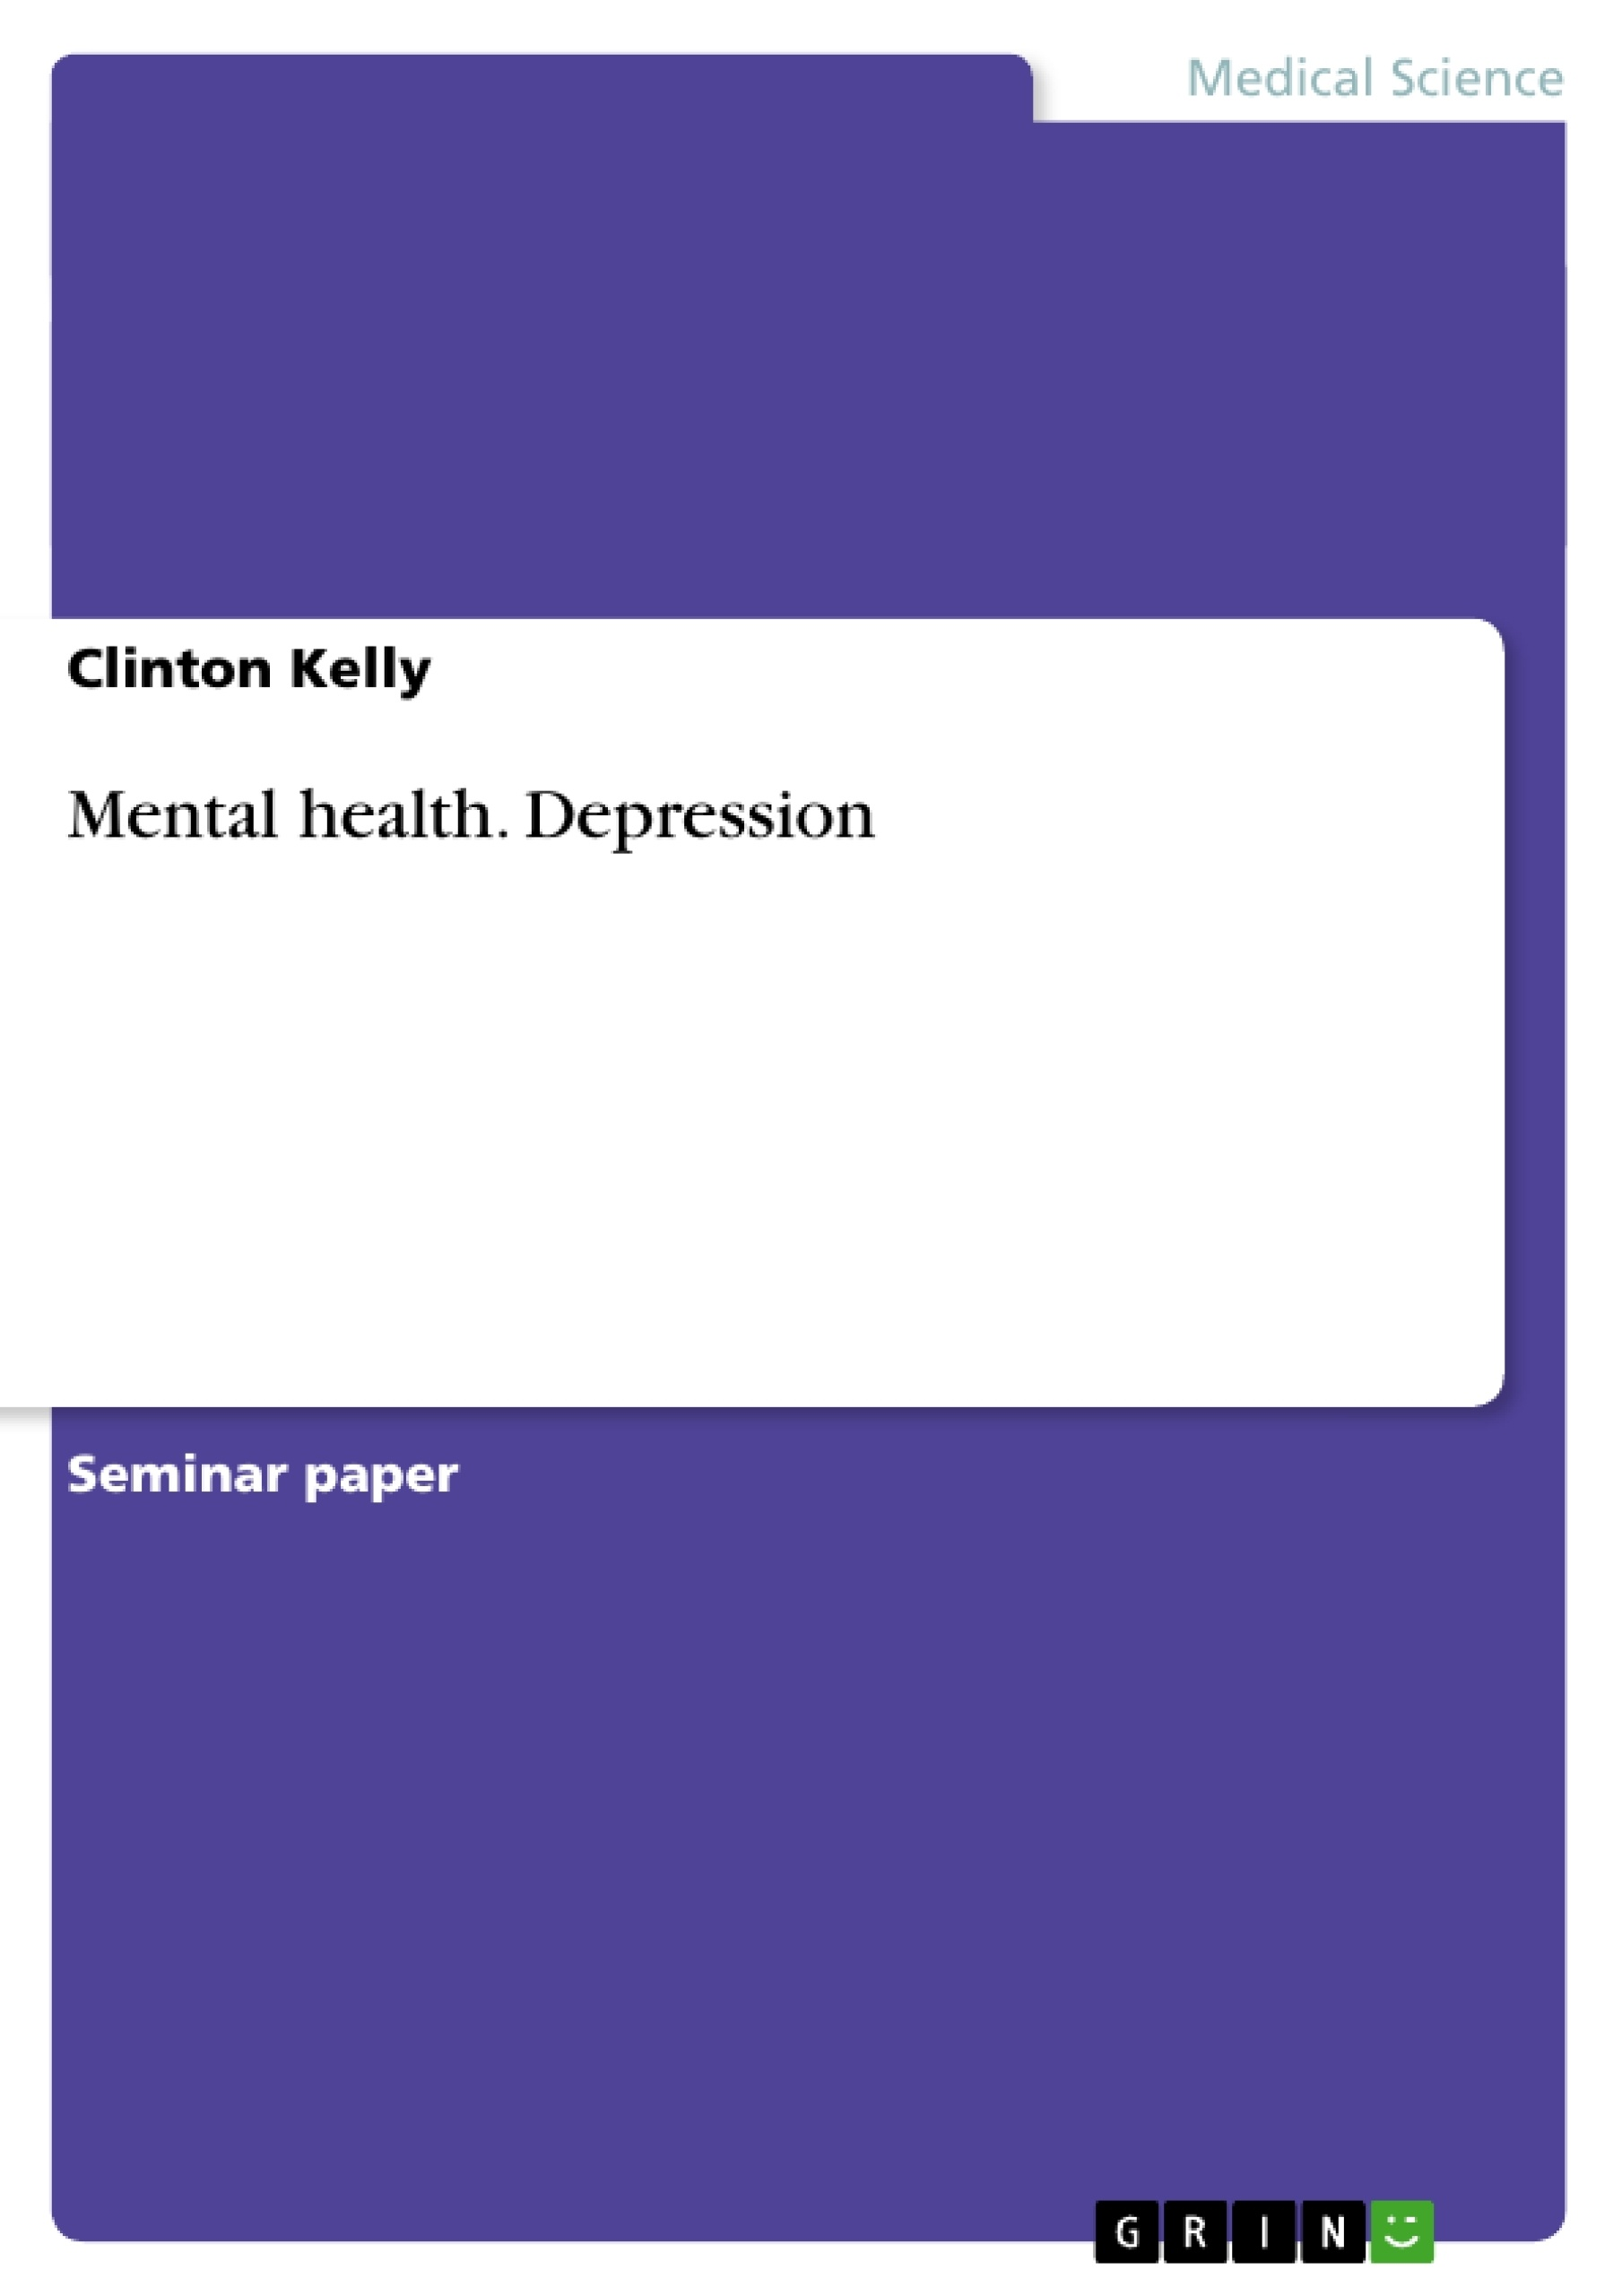 Mental health term papers